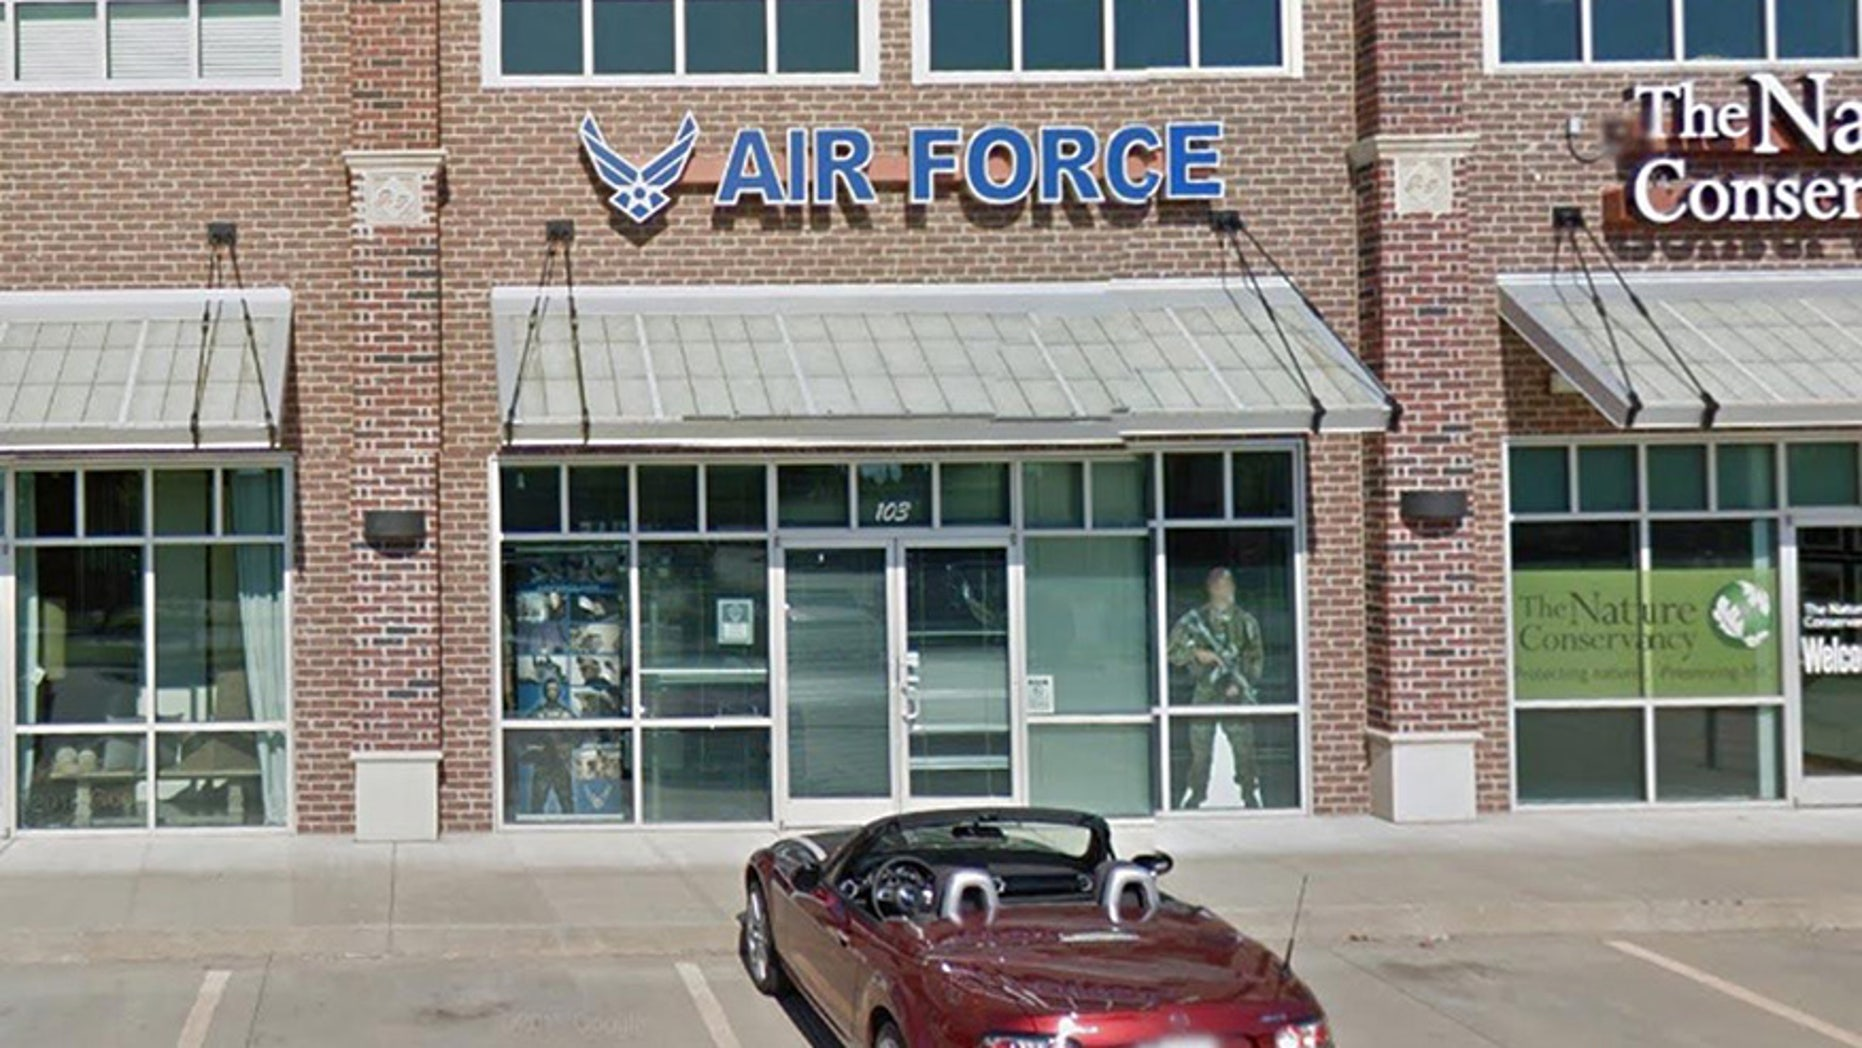 Air Force recruiting center near Tulsa, Oklahoma.